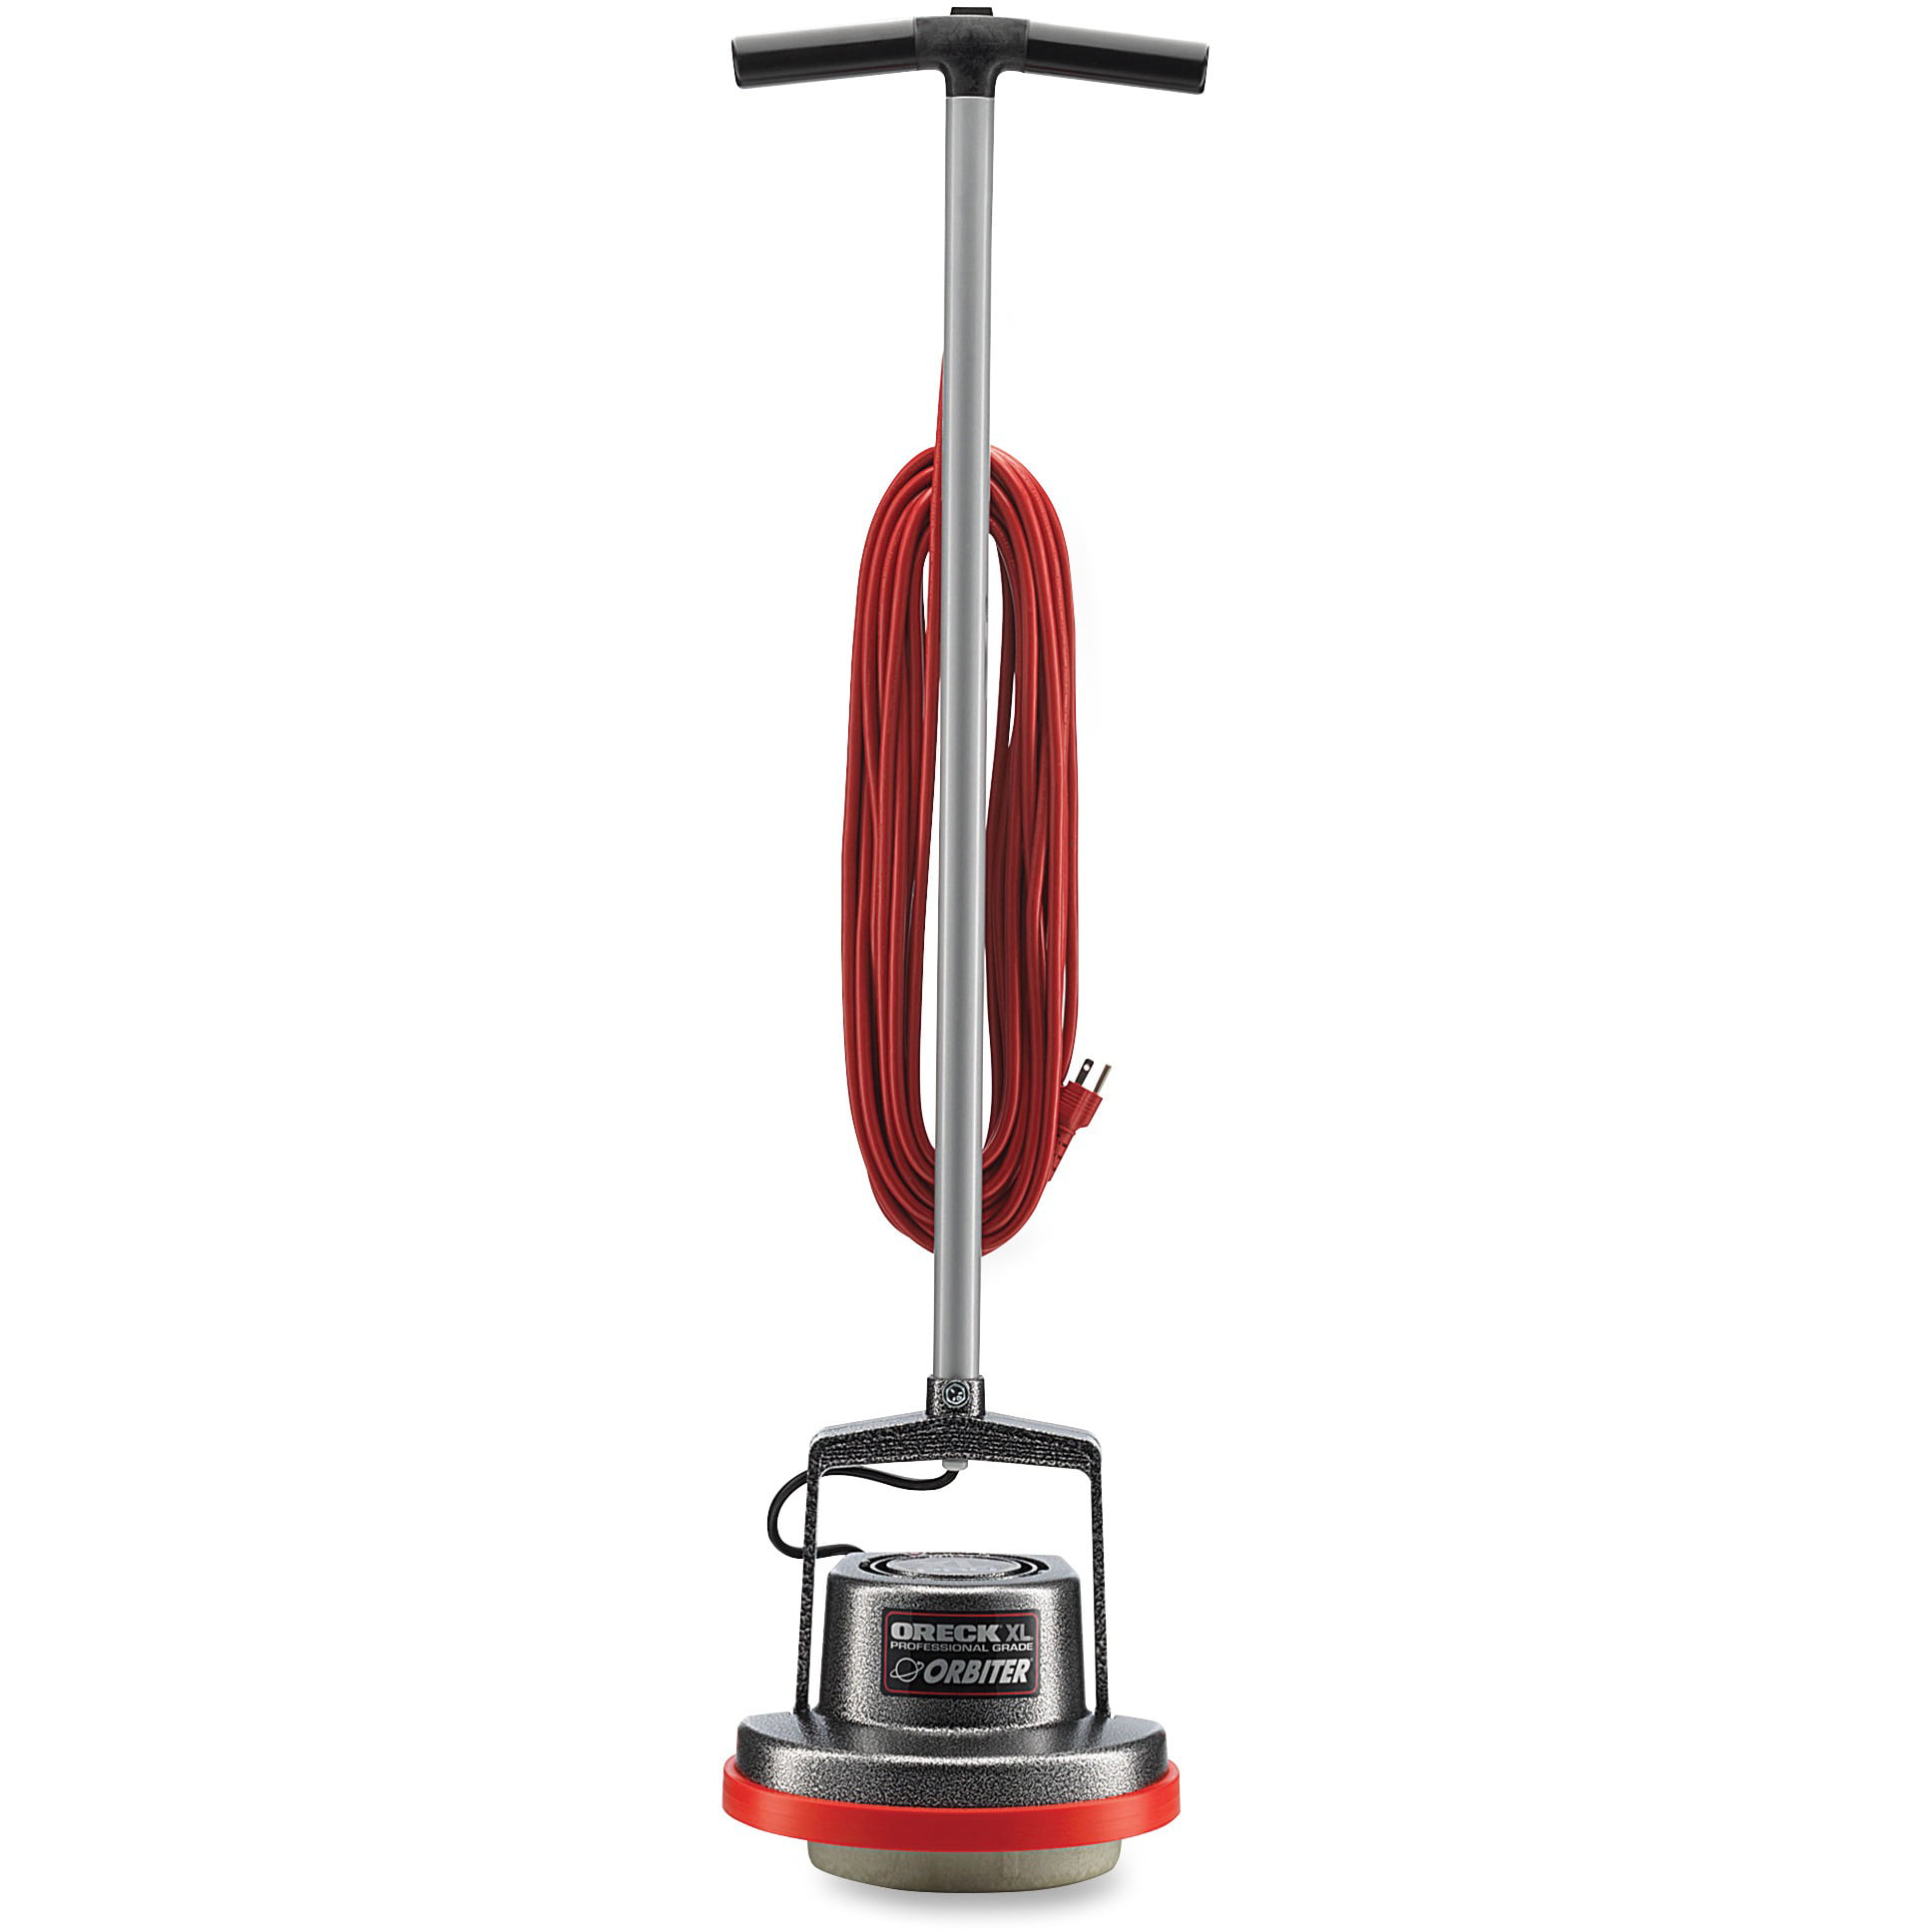 Oreck Commercial Orb550mc Orbiter Floor Machine